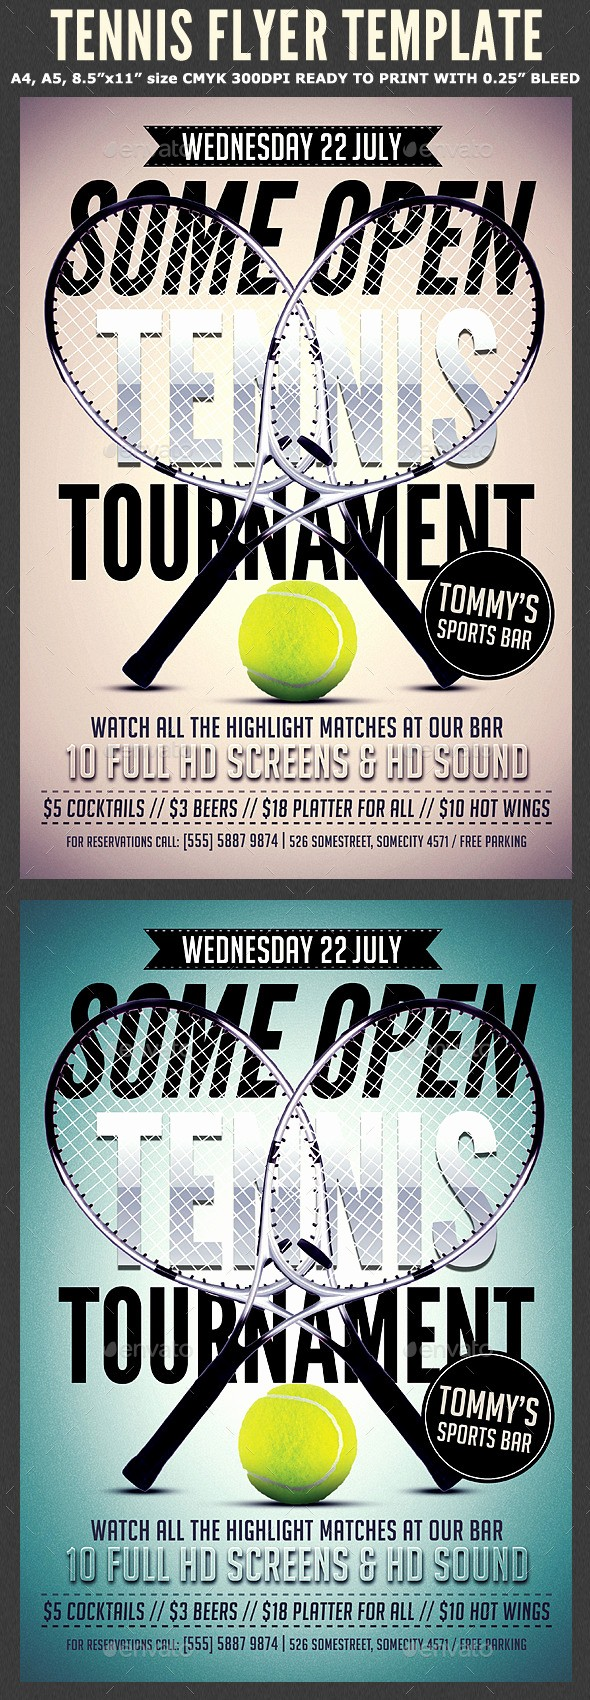 Softball tournament Flyer Template Free Lovely Tennis Flyer Template 2 by Hotpin